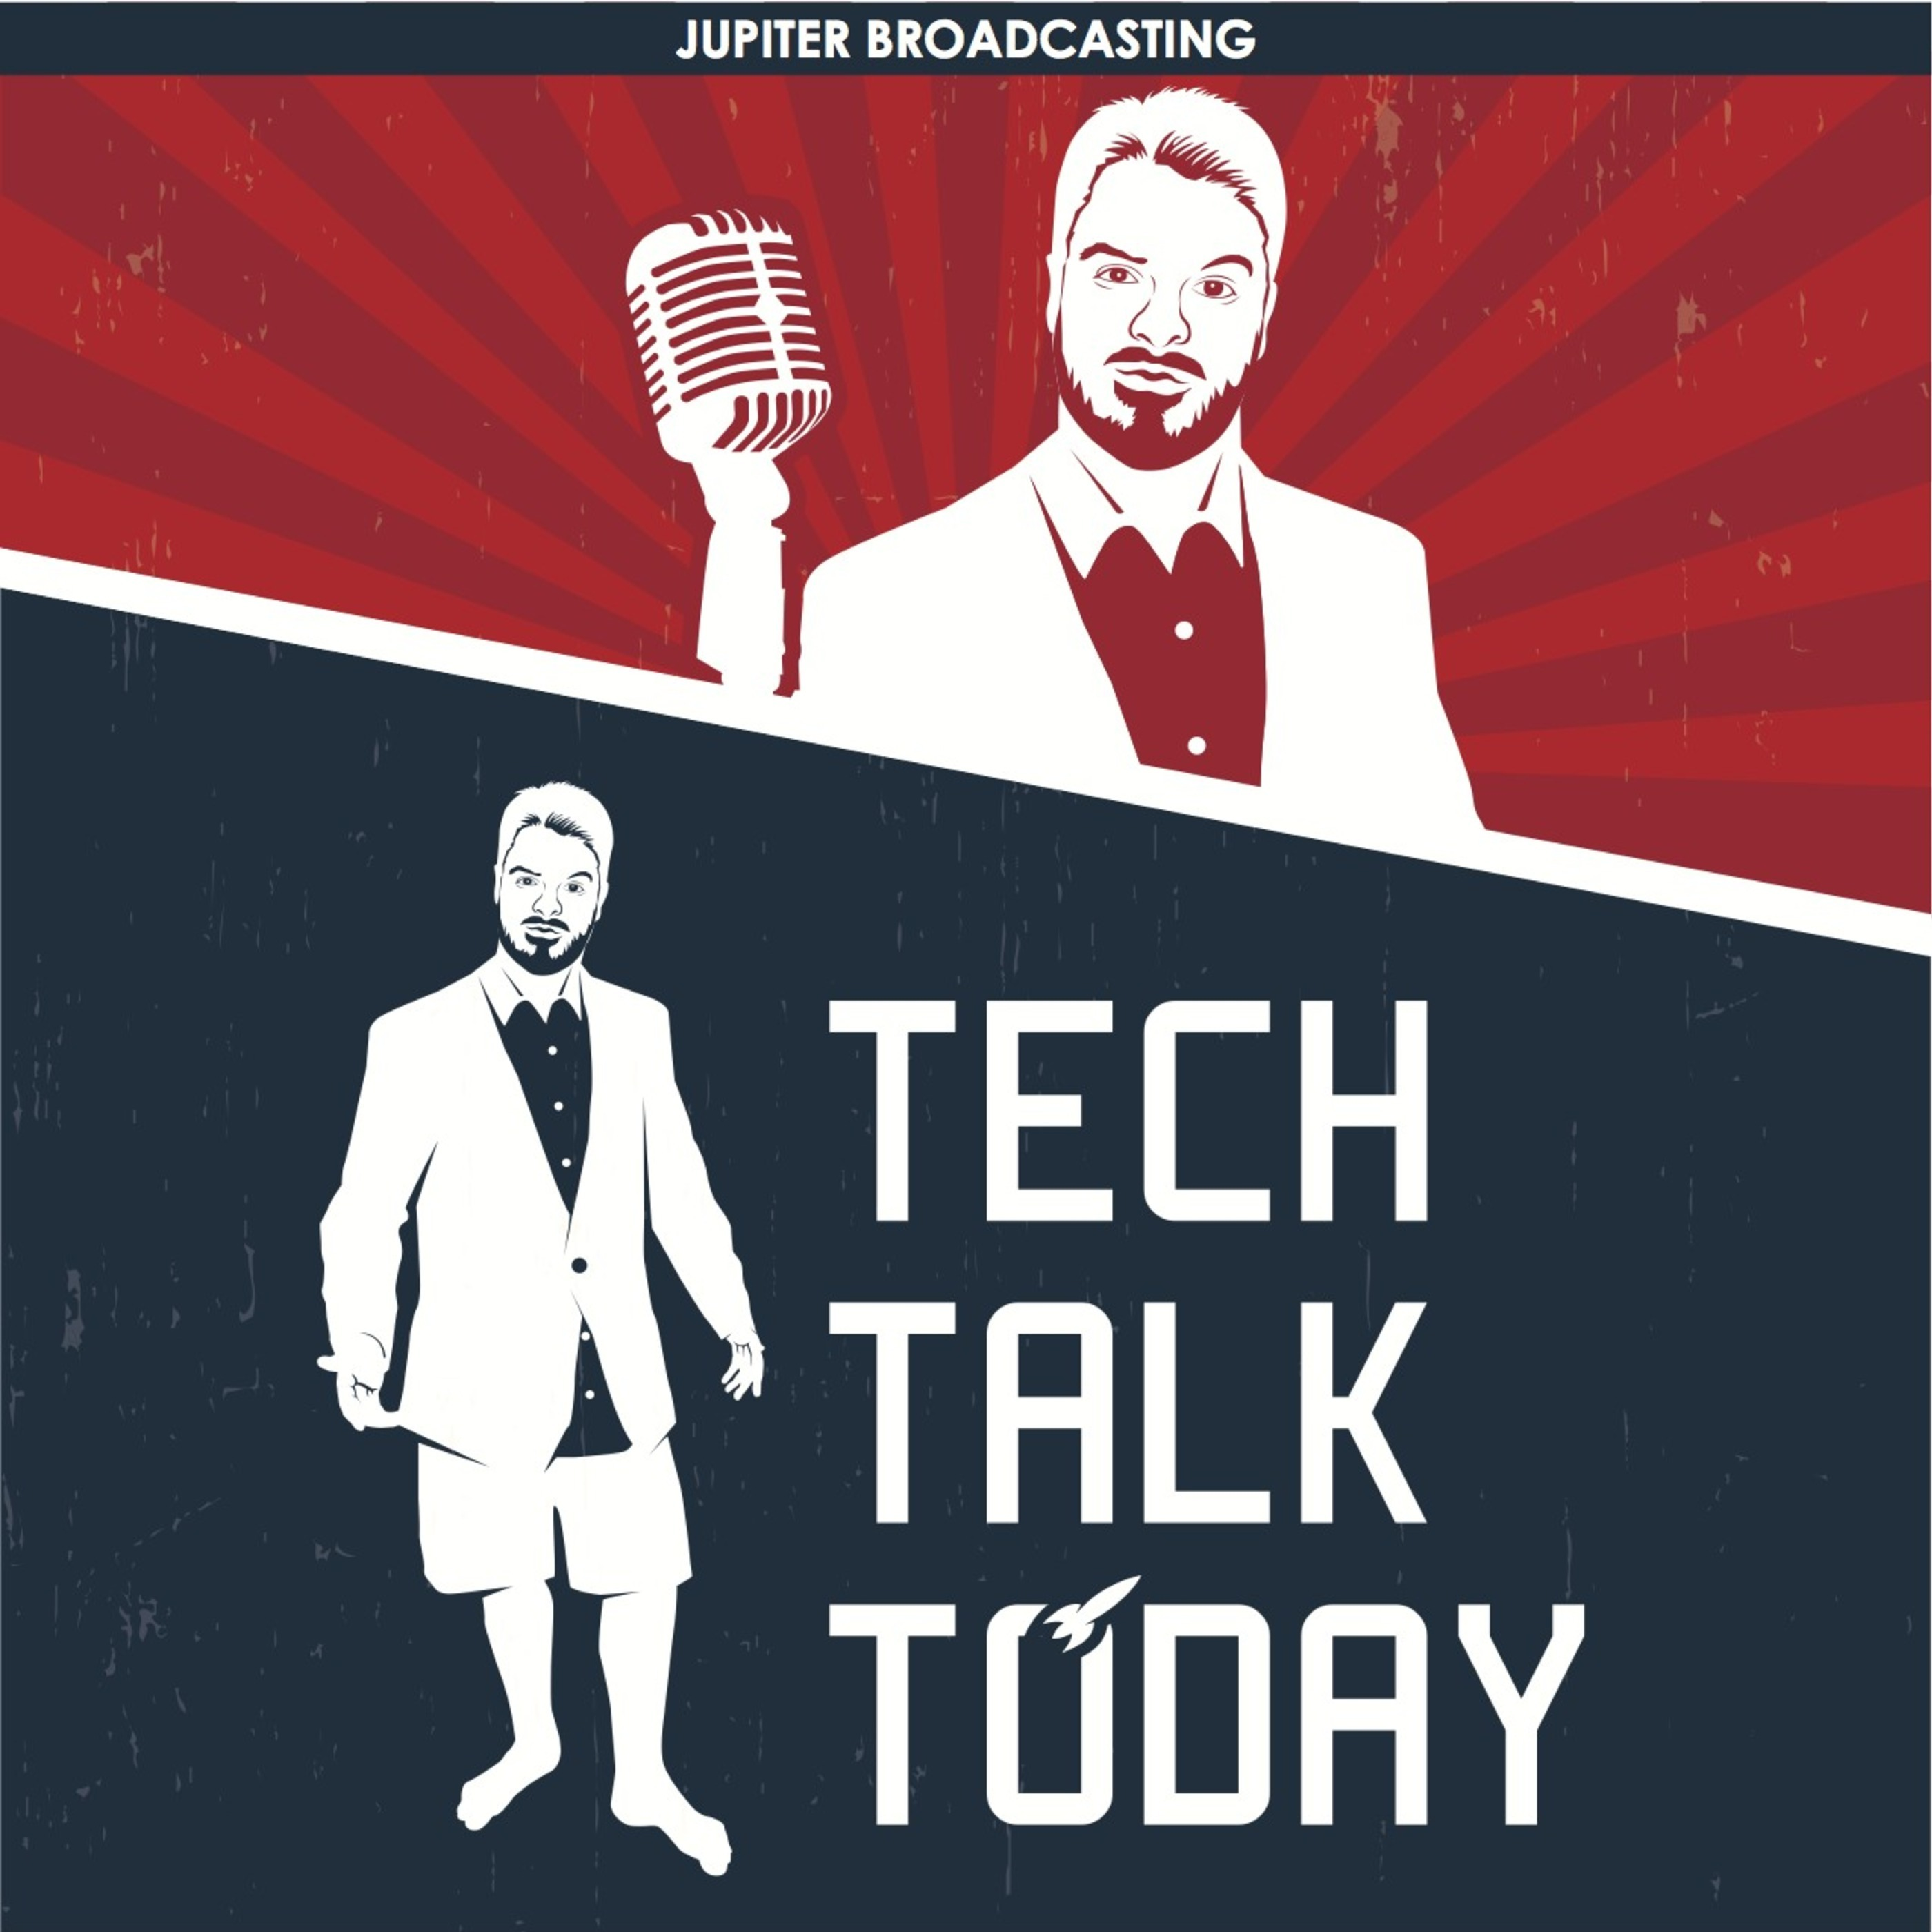 Episode 20: Browser Pirates | Tech Talk Today 173